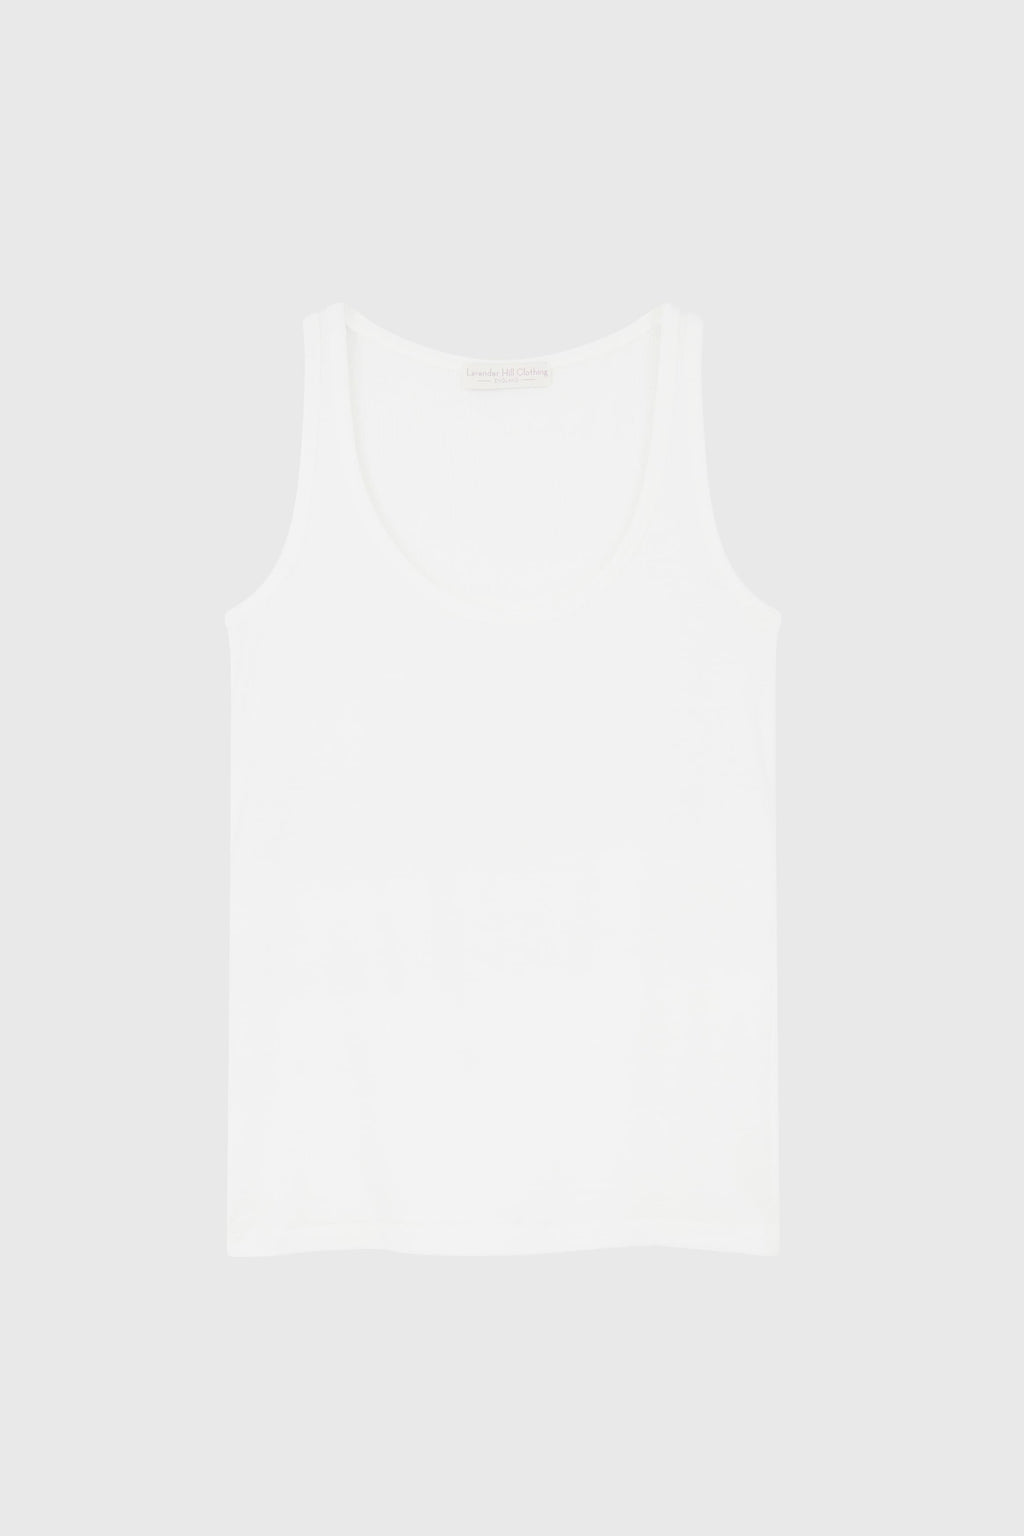 Women's Scoop Neck Tank to | Sleeveless Tank Top by Lavender Hill Clothing